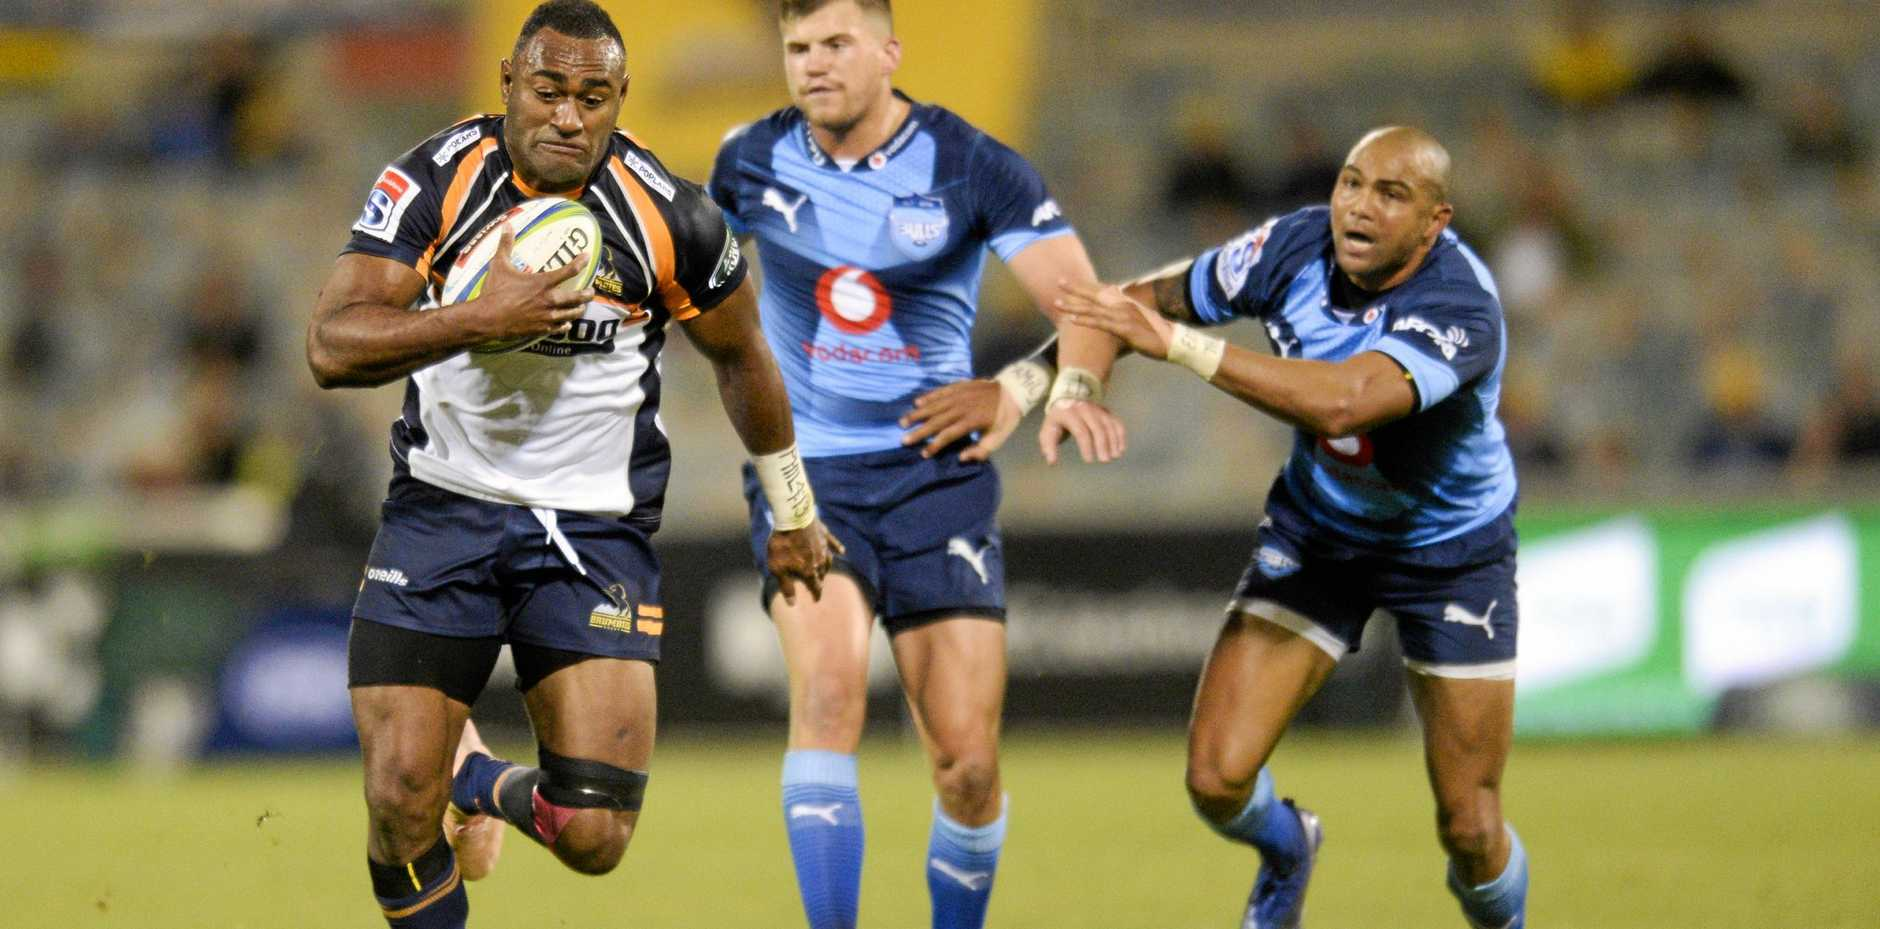 The Brumbies' Tevita Kuridrani shows the Bulls a clean pair of heels at Canberra's GIO Stadium on May 24. Picture: Rohan Thomson/AAP